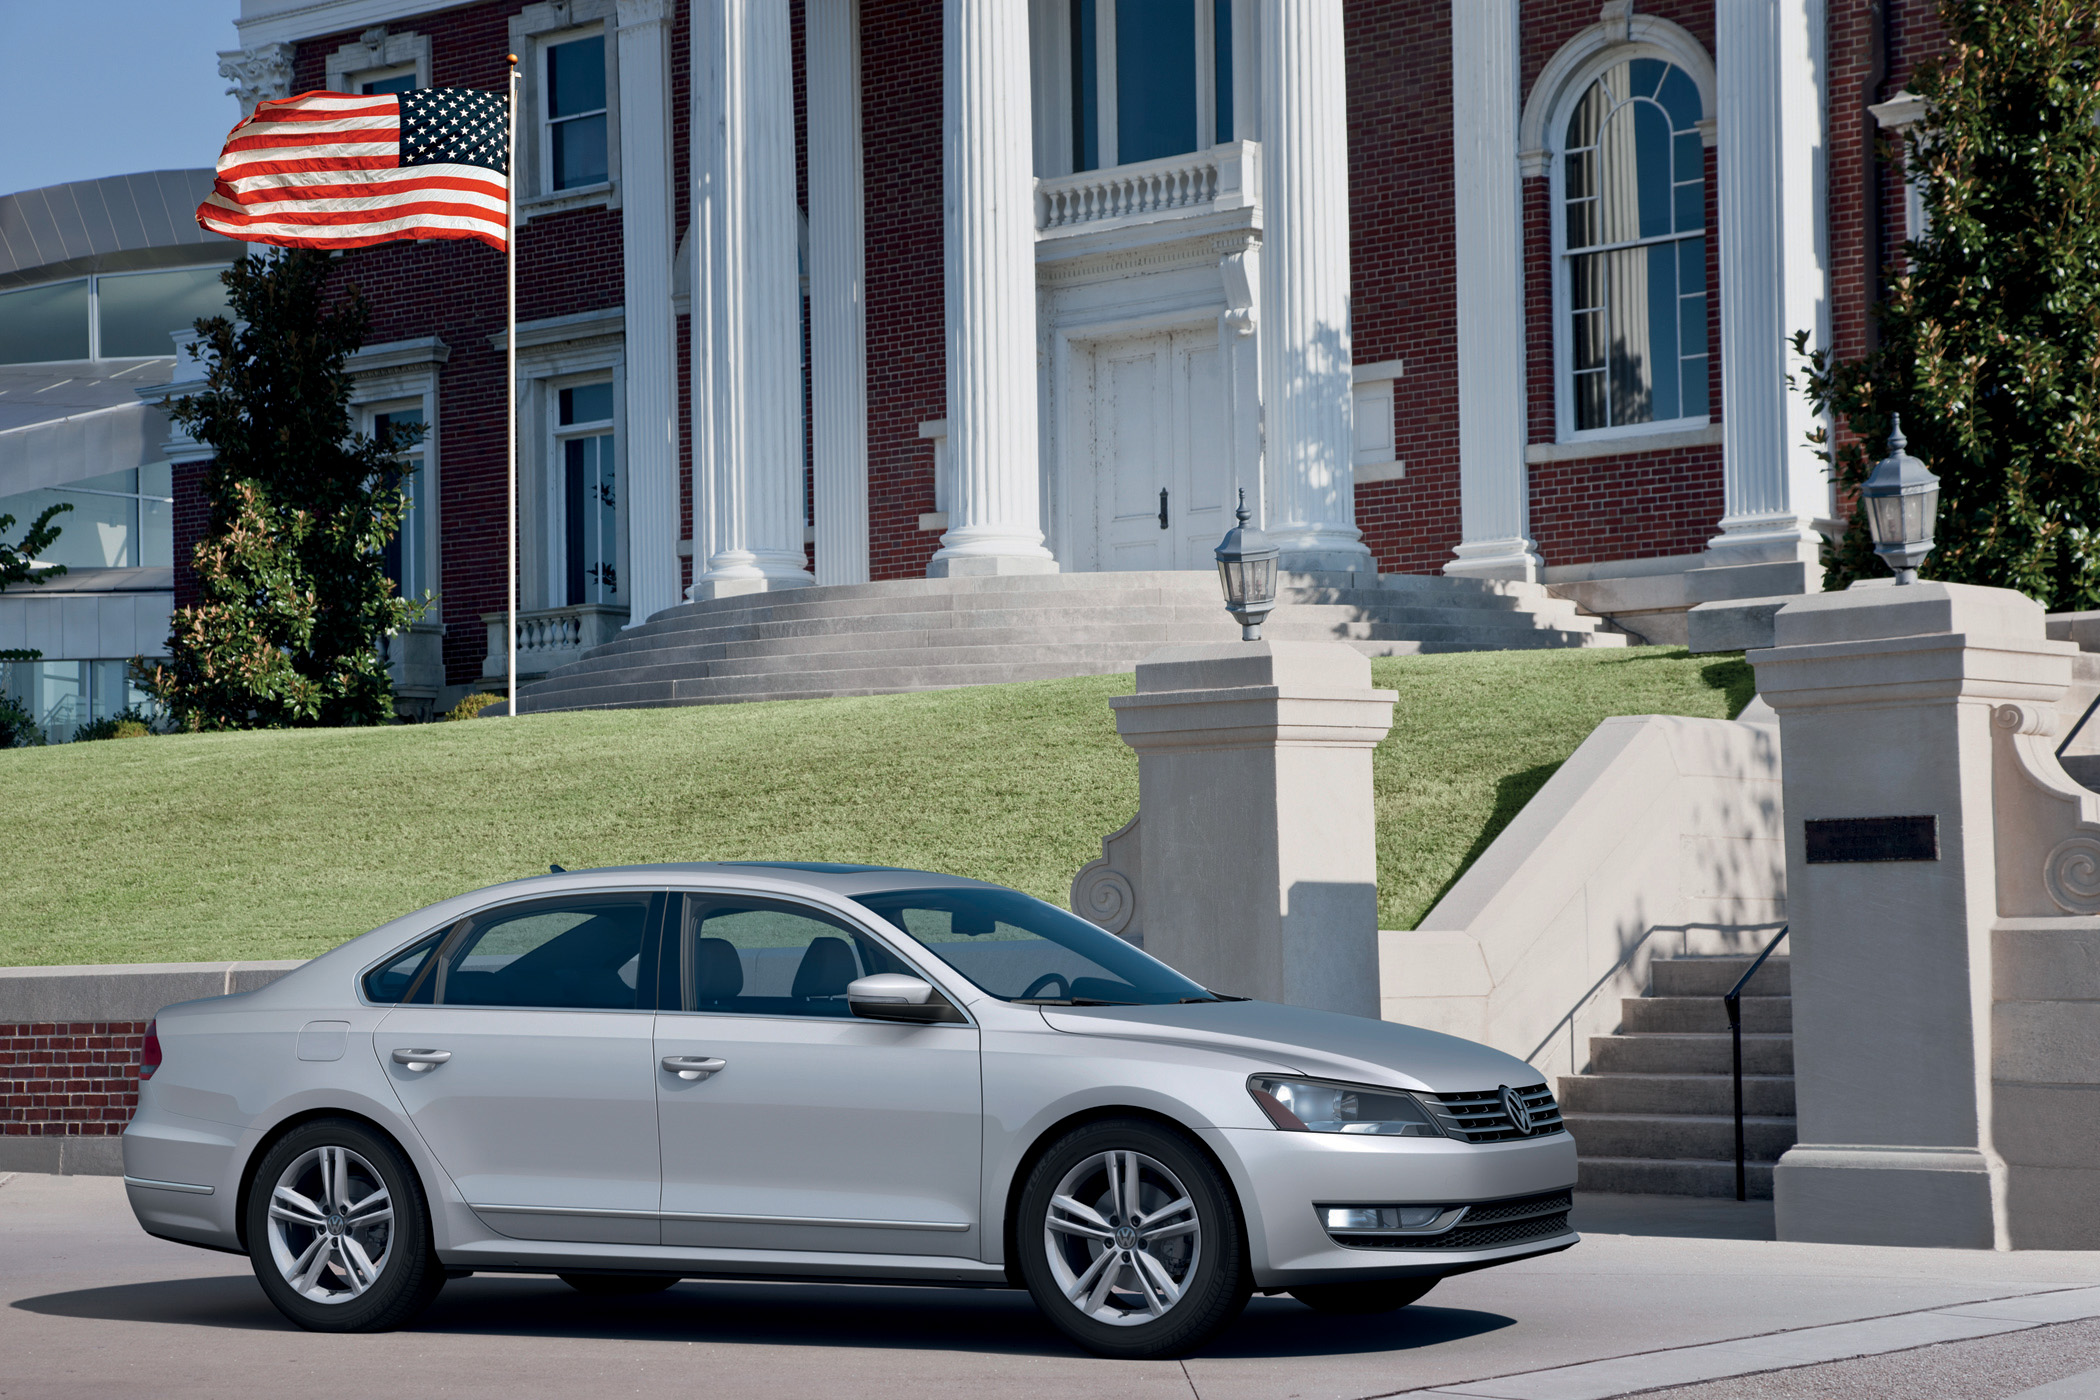 Manufacturer photo: The 2012 Passat is developed as a larger vehicle with premium features and handling characteristics that perfectly matches it with the tastes and lifestyles of Americans